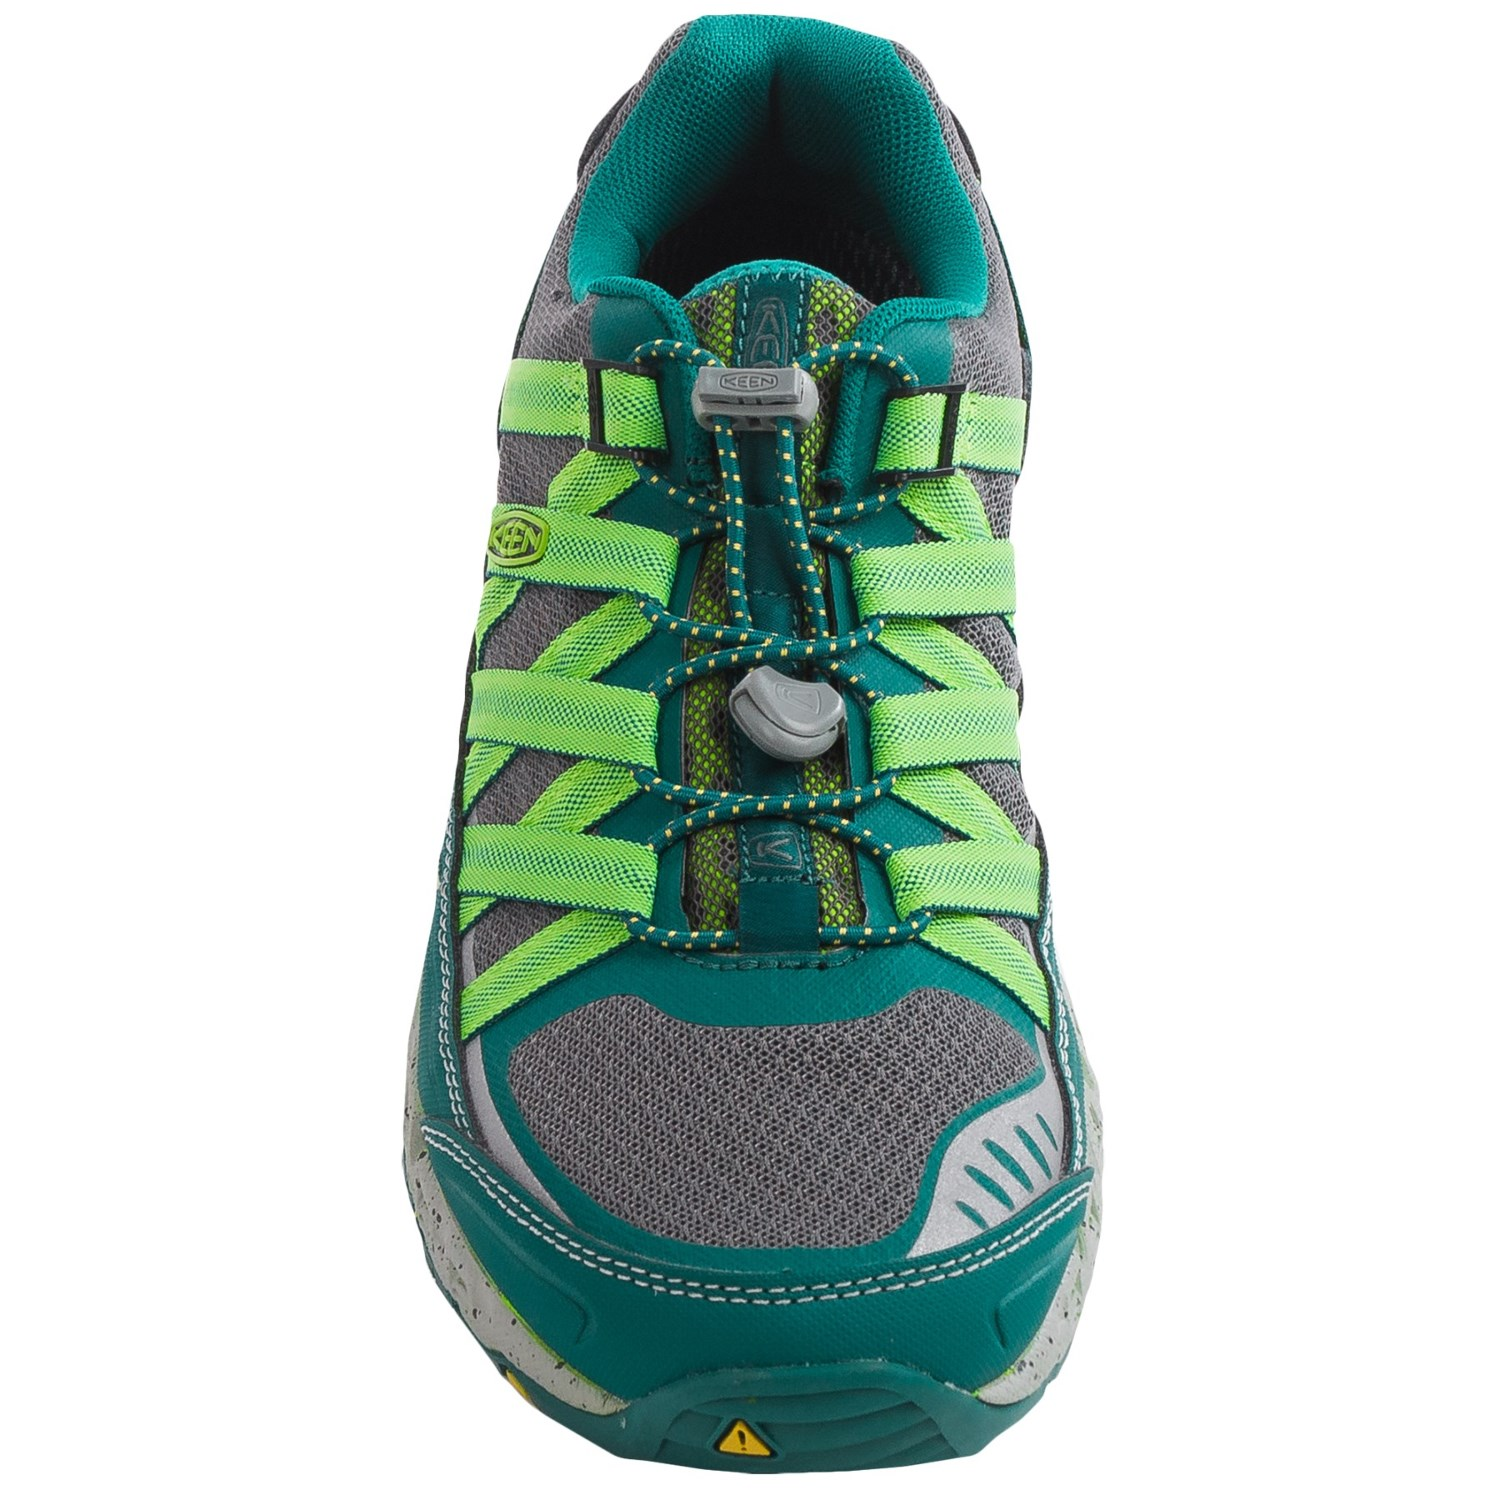 Keen Versatrail Low Hiking Shoes Review